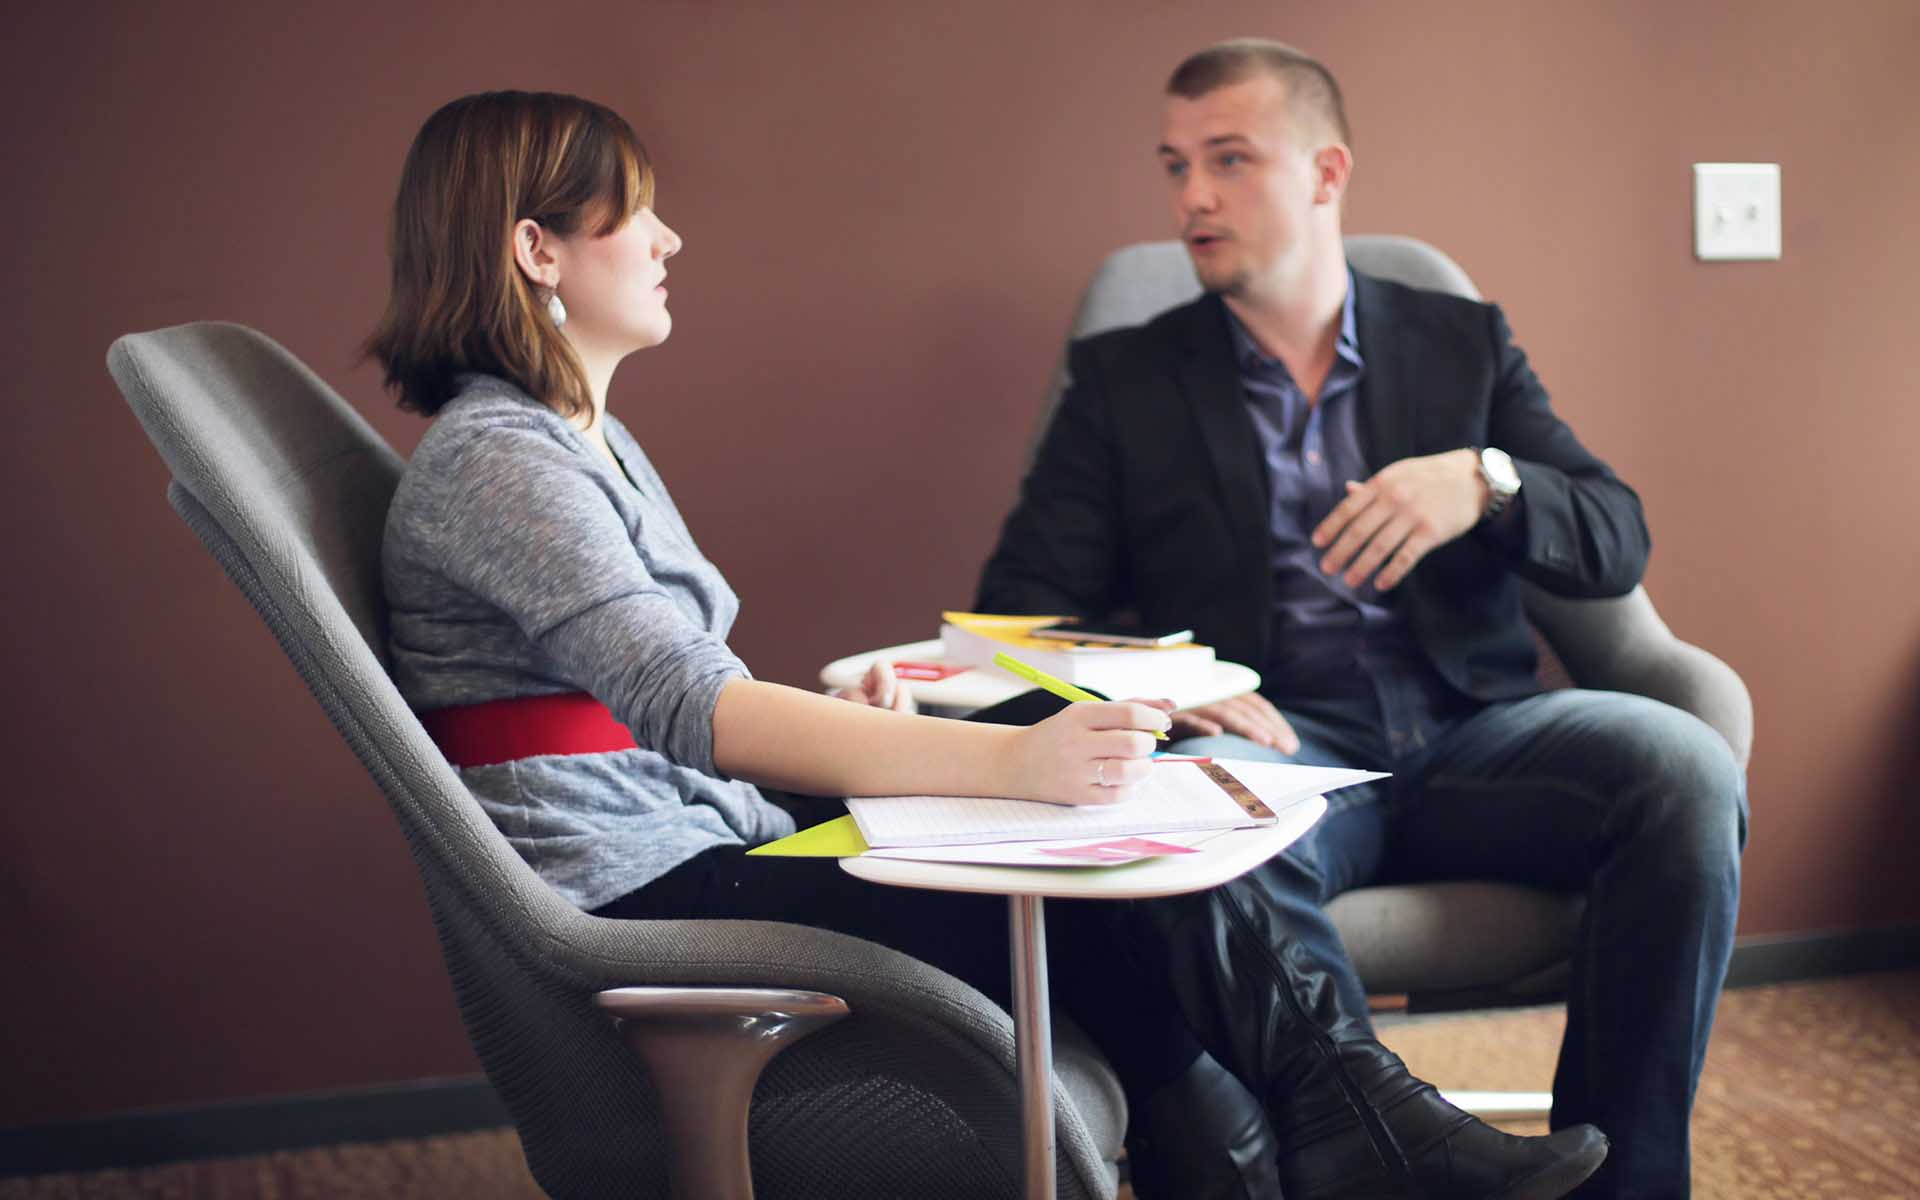 Website User Interviews - How to Interview Customers for Marketing Goals